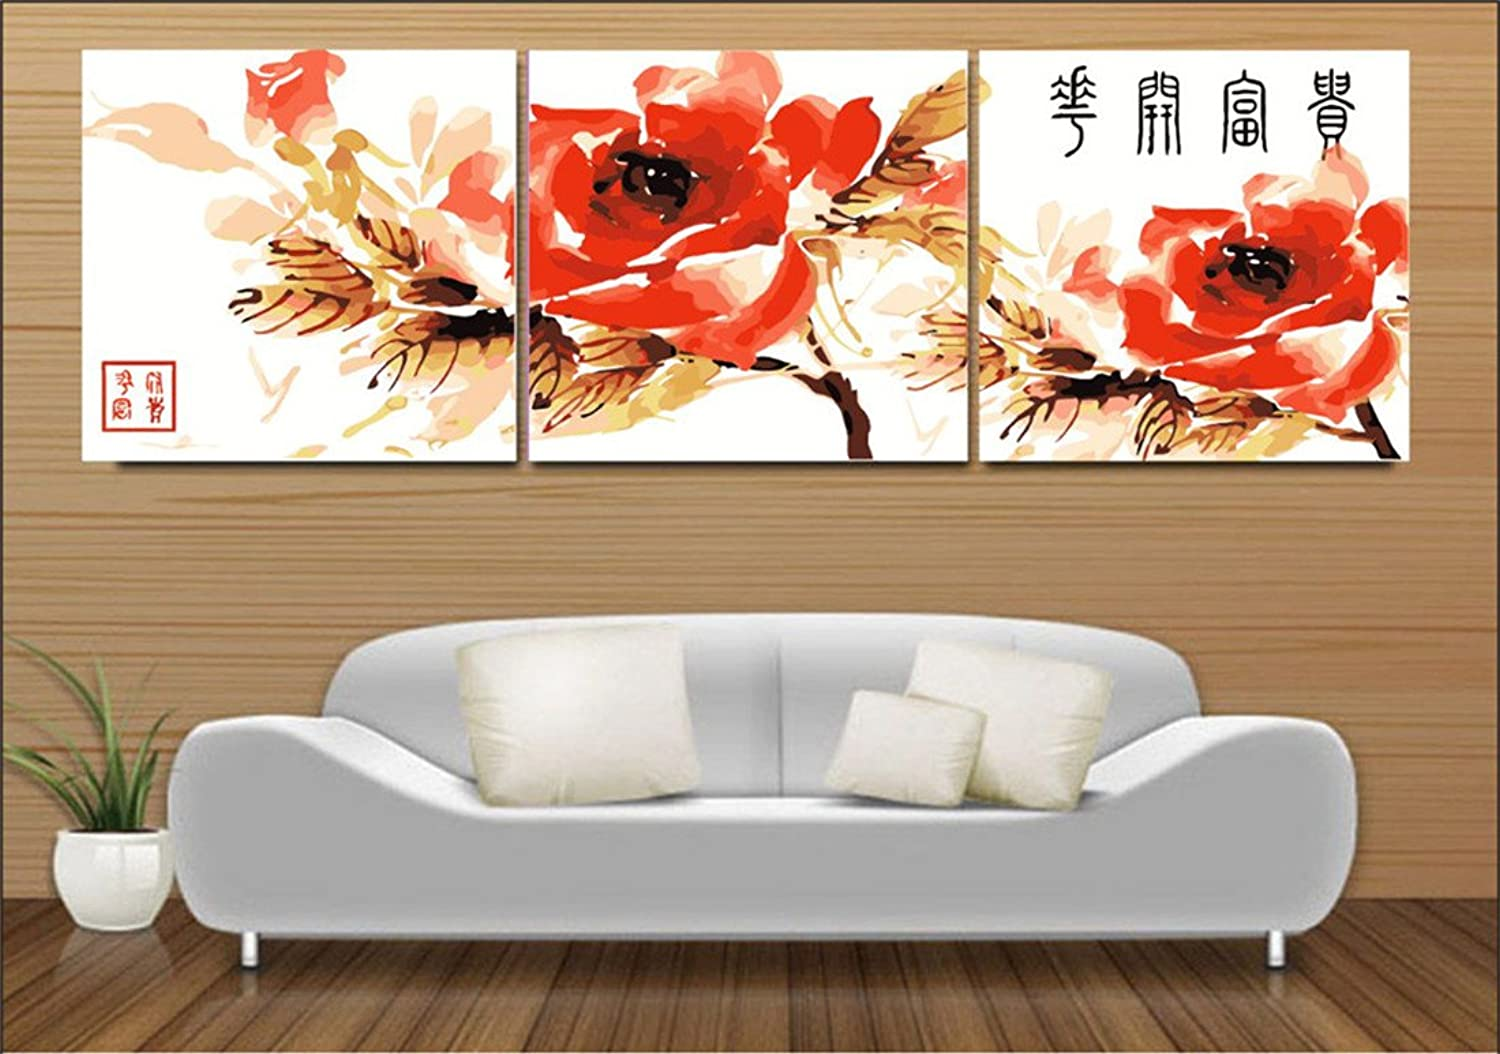 YEESAM Art New Paint by Numbers for Adults 3 Piece Pack Panel  Lucky Red Flowers Blossom 20x20 inch Linen Canvas  DIY Painting Three Pieces Multipack Wall Art (Without Frame)